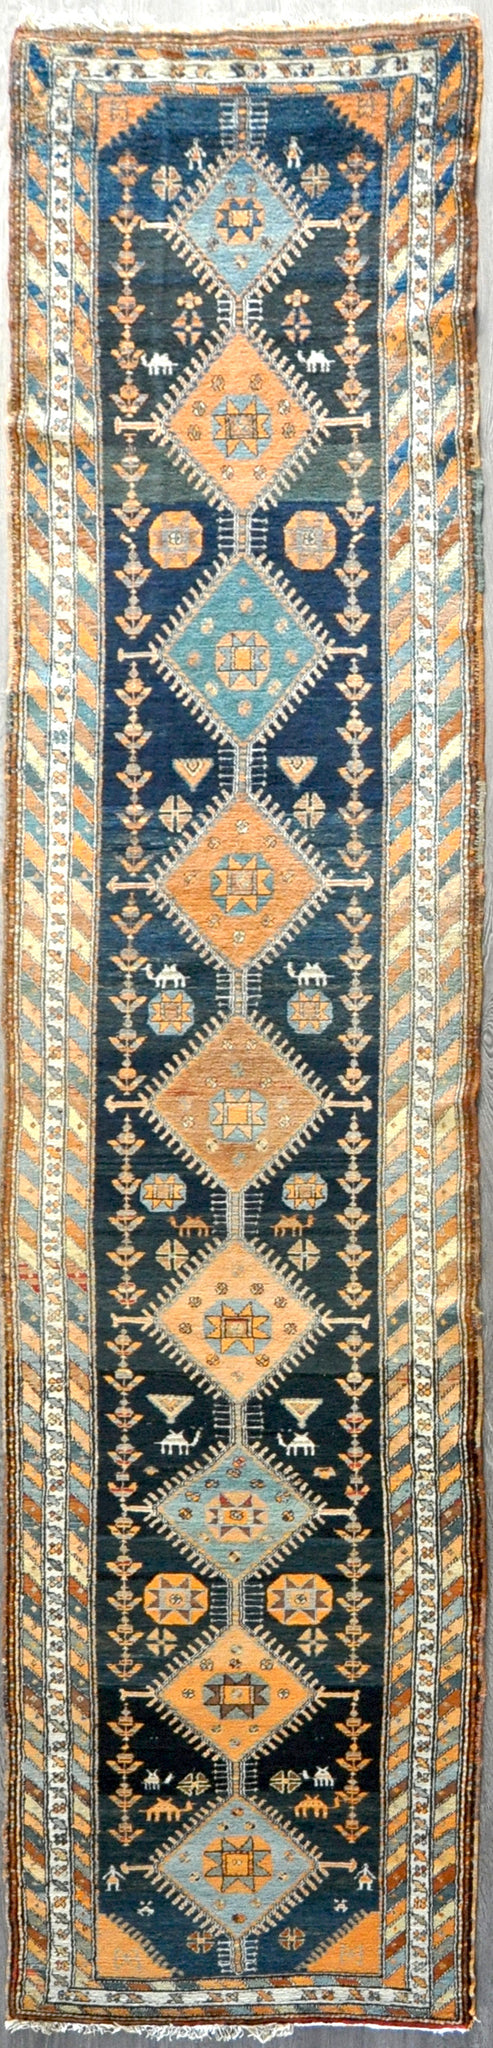 3.2x14.4 Antique Persian kurdish #81555